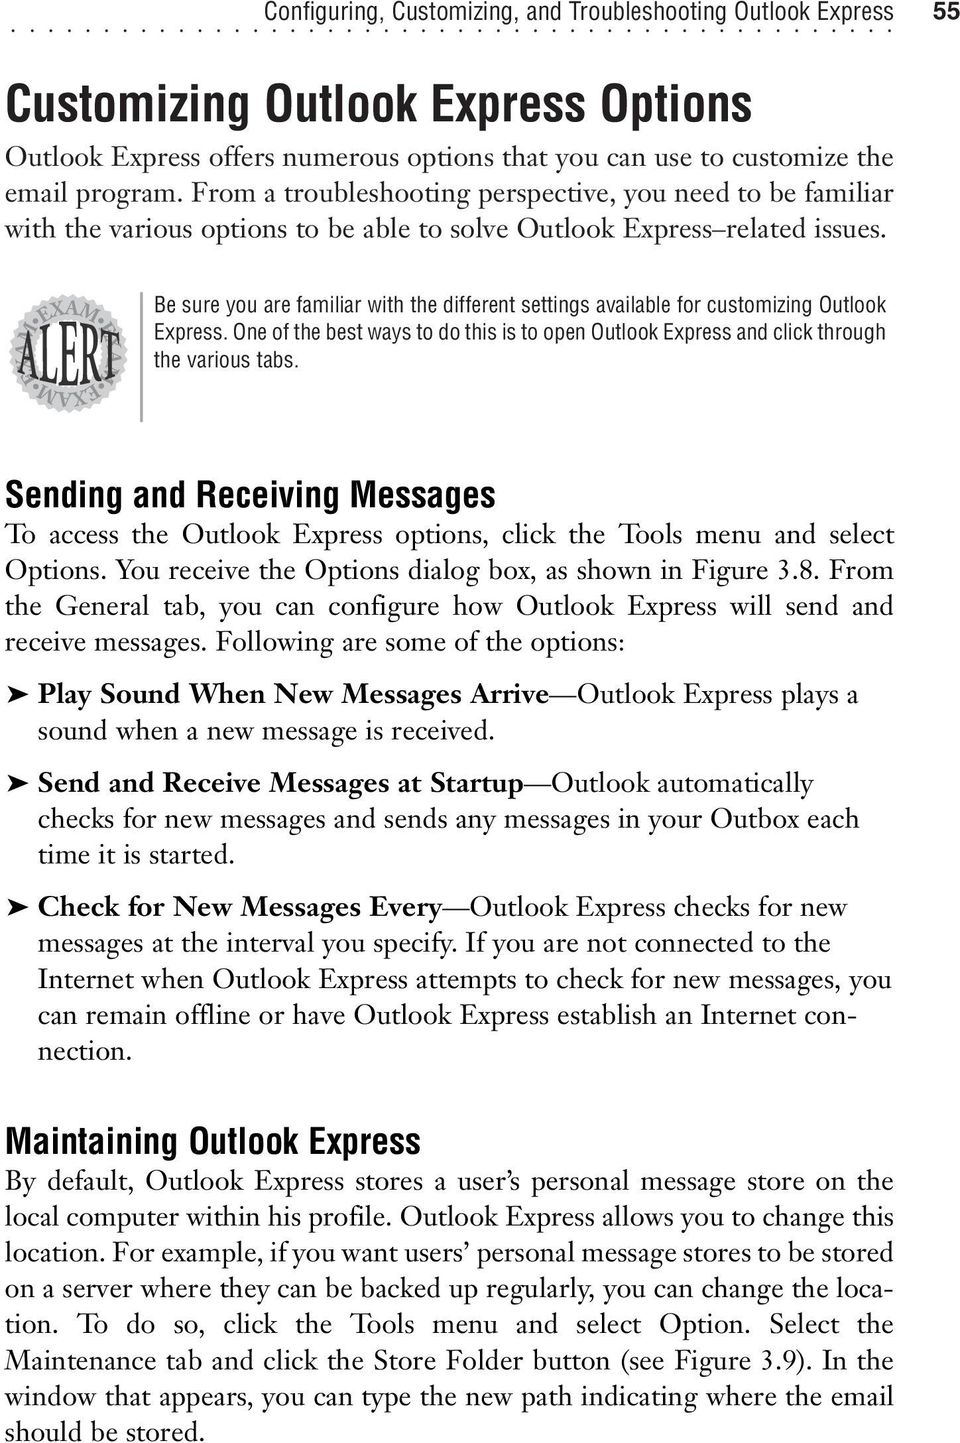 Be sure you are familiar with the different settings available for customizing Outlook Express. One of the best ways to do this is to open Outlook Express and click through the various tabs.